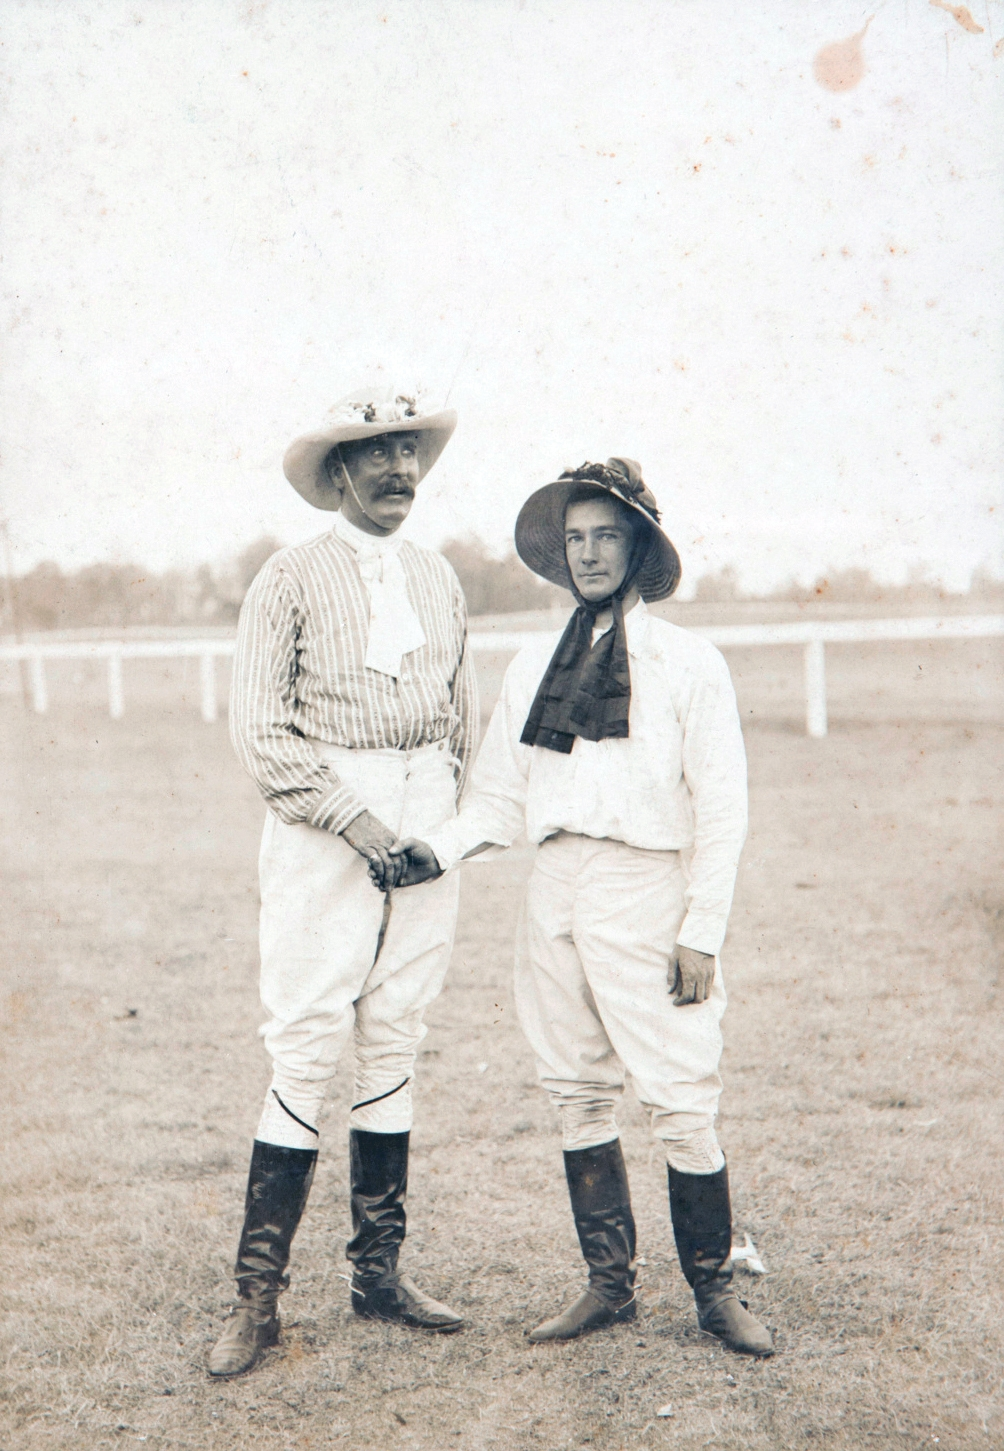 Two men in riding gear and hats on field.